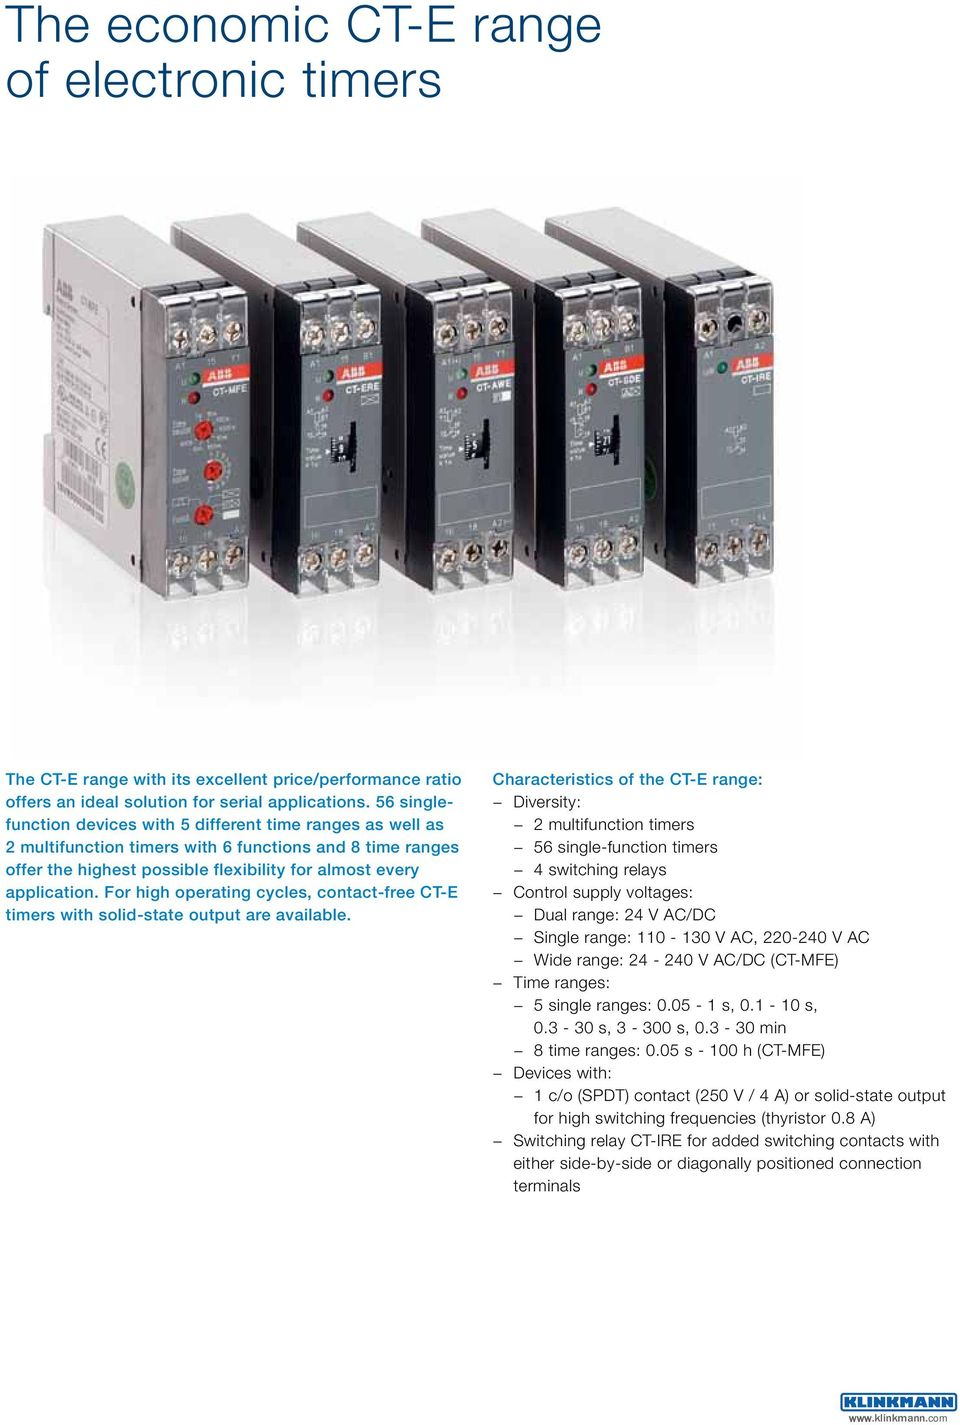 For high operating cycles, contact-free CT-E timers with solid-state output are available.